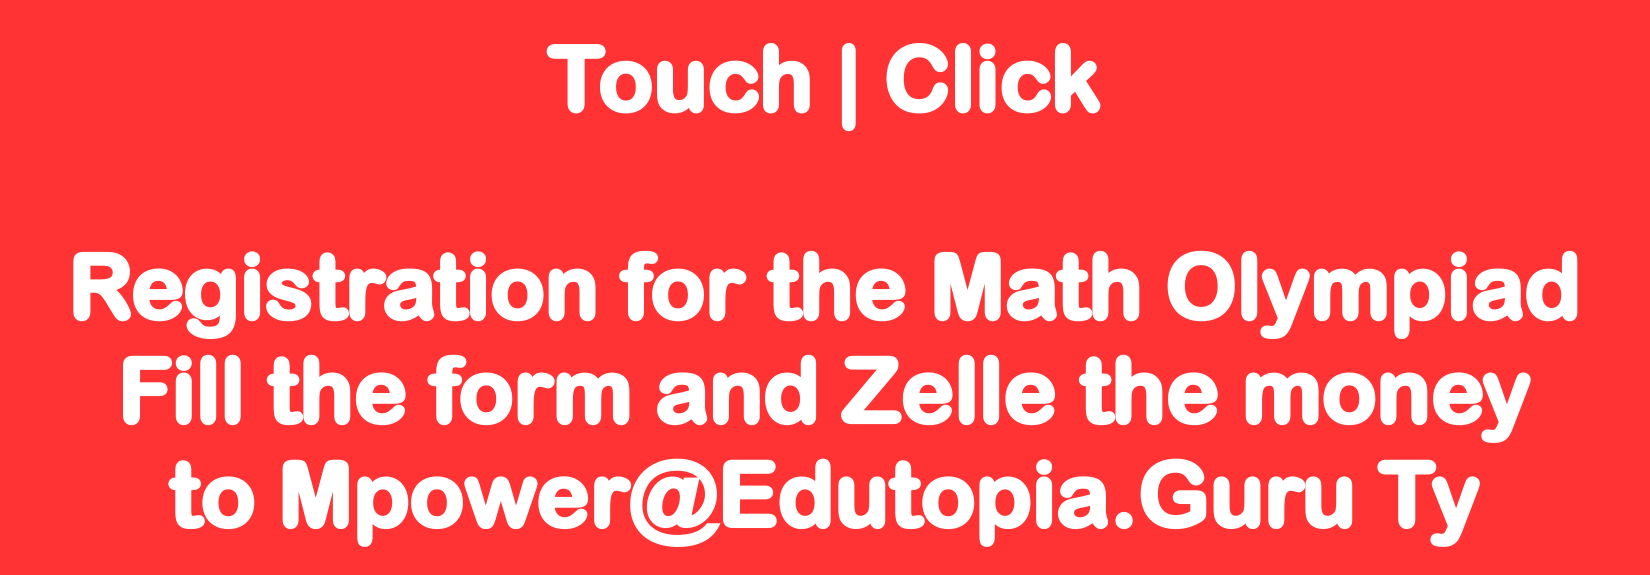 Registration Form for Math Olympiad _ Fill and Zelle to Mpower@Edutopia.Guru